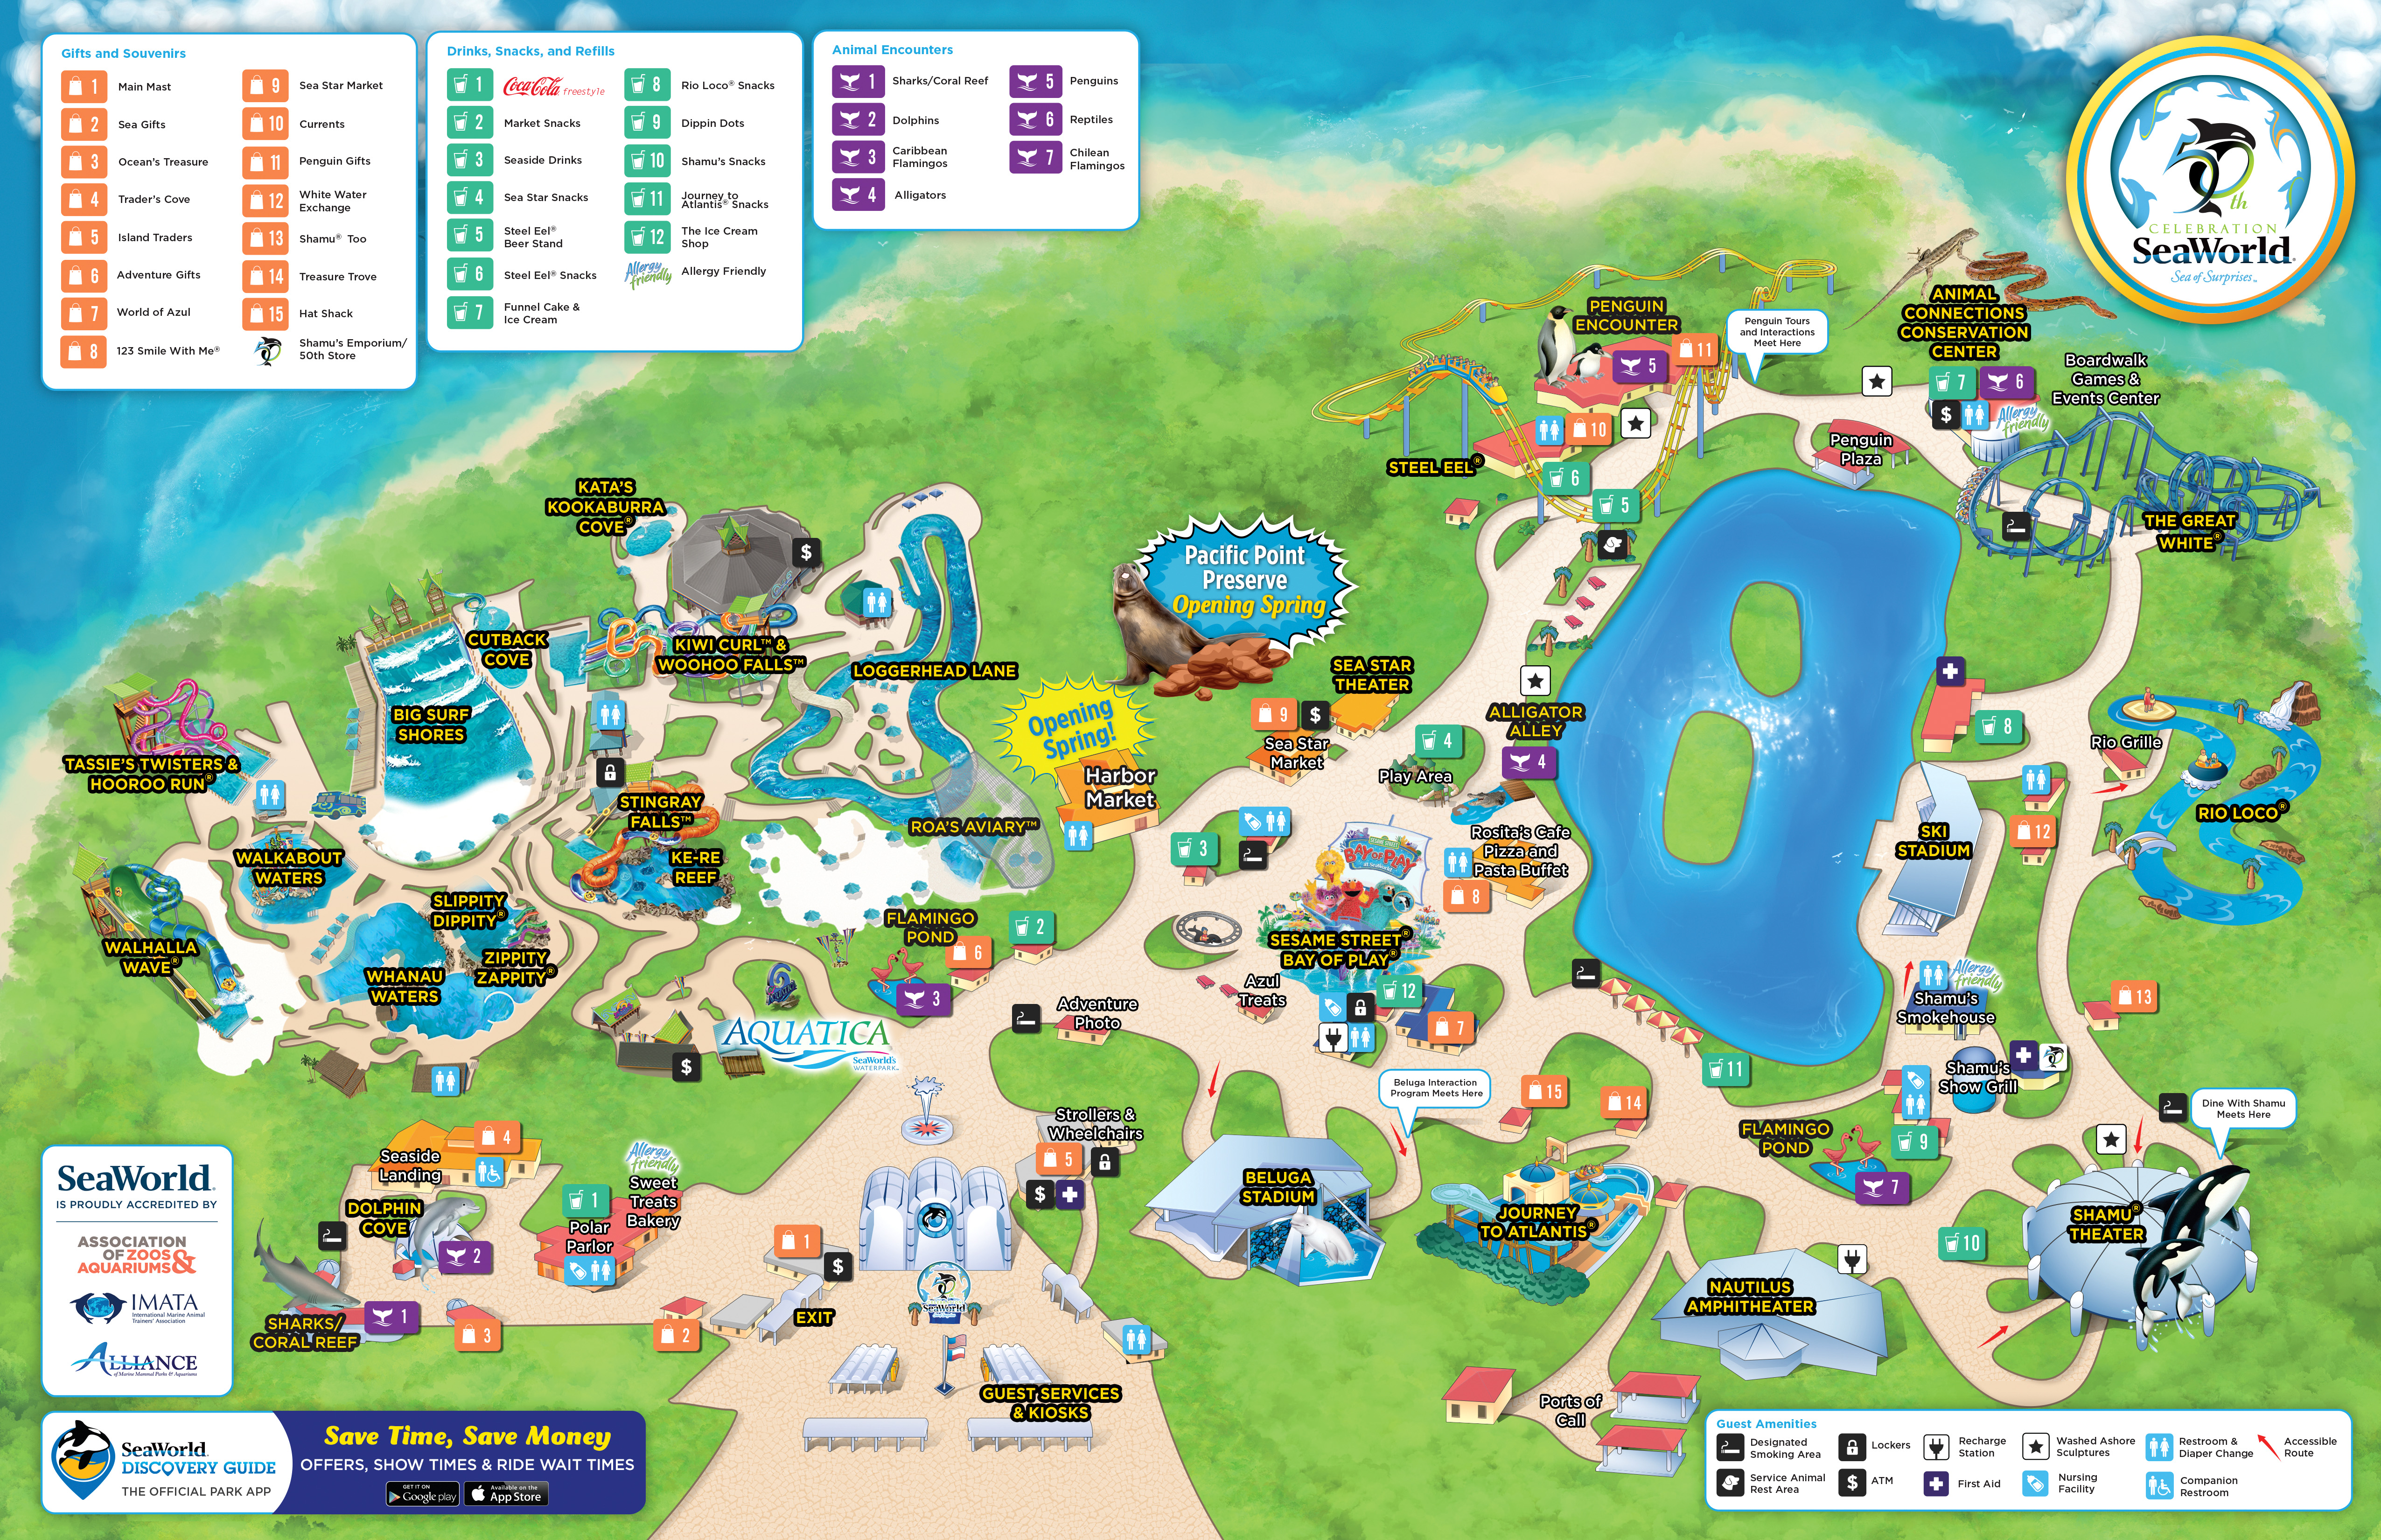 image relating to Seaworld San Antonio Coupons Printable named Discount coupons seaworld san diego california / American large